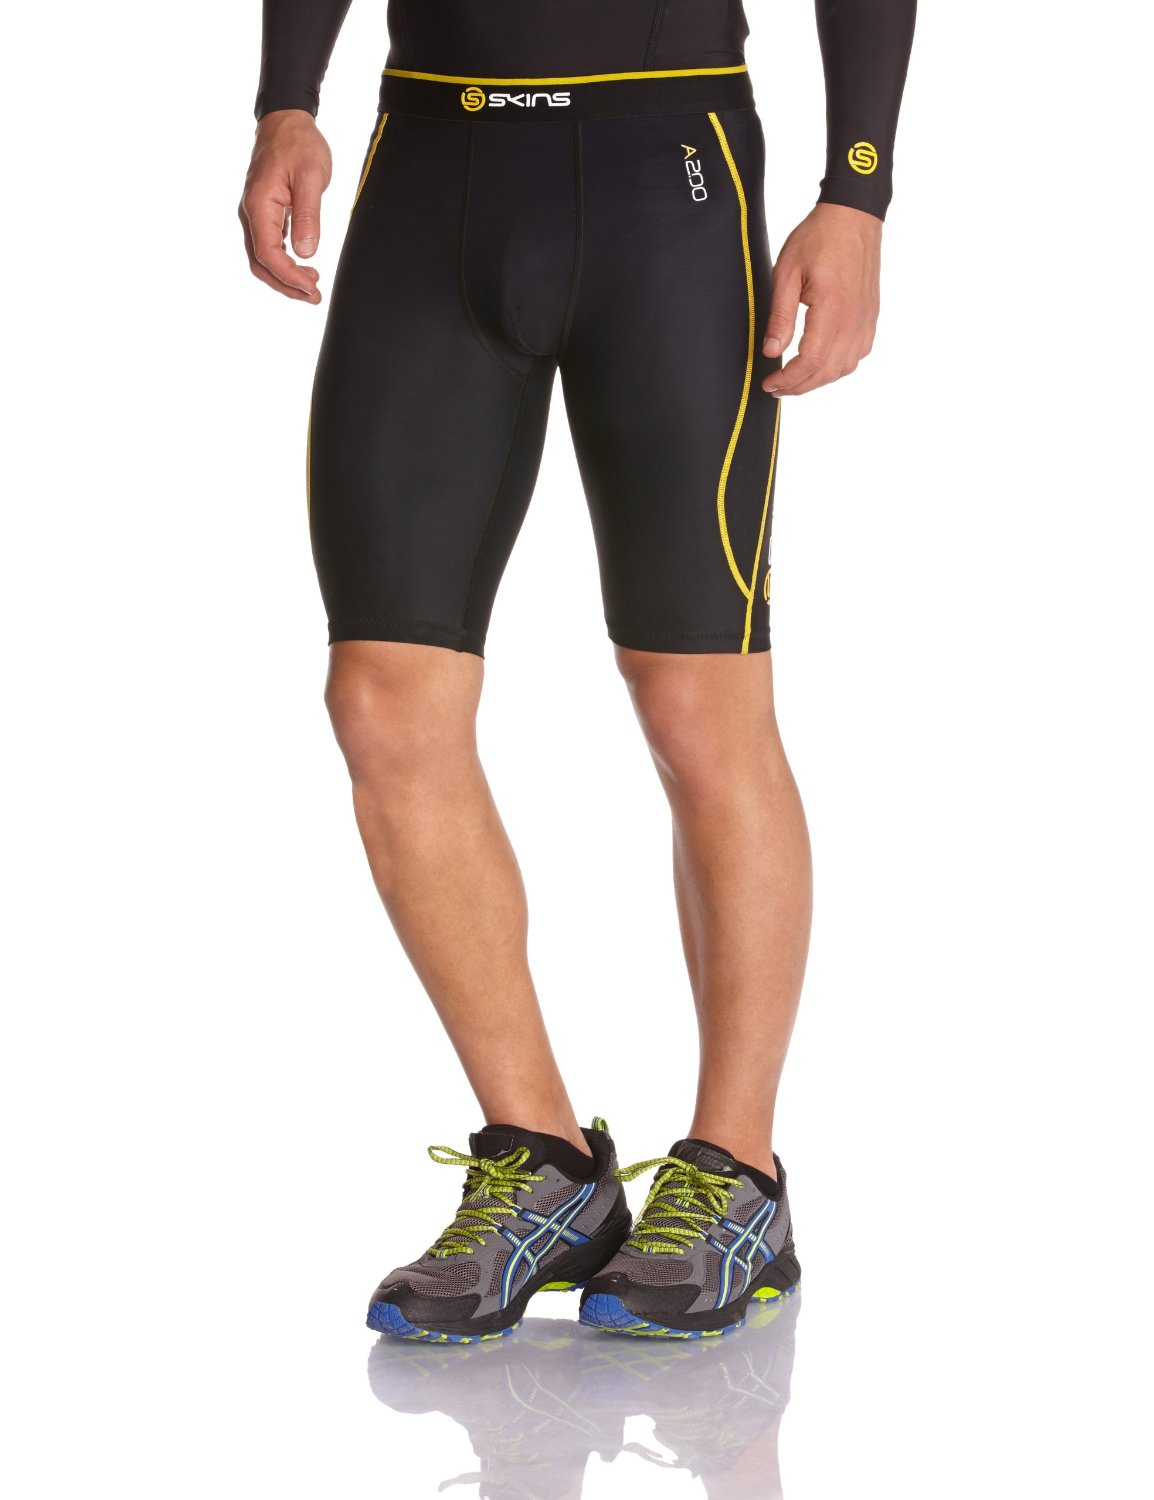 a200 mens compression half tights image